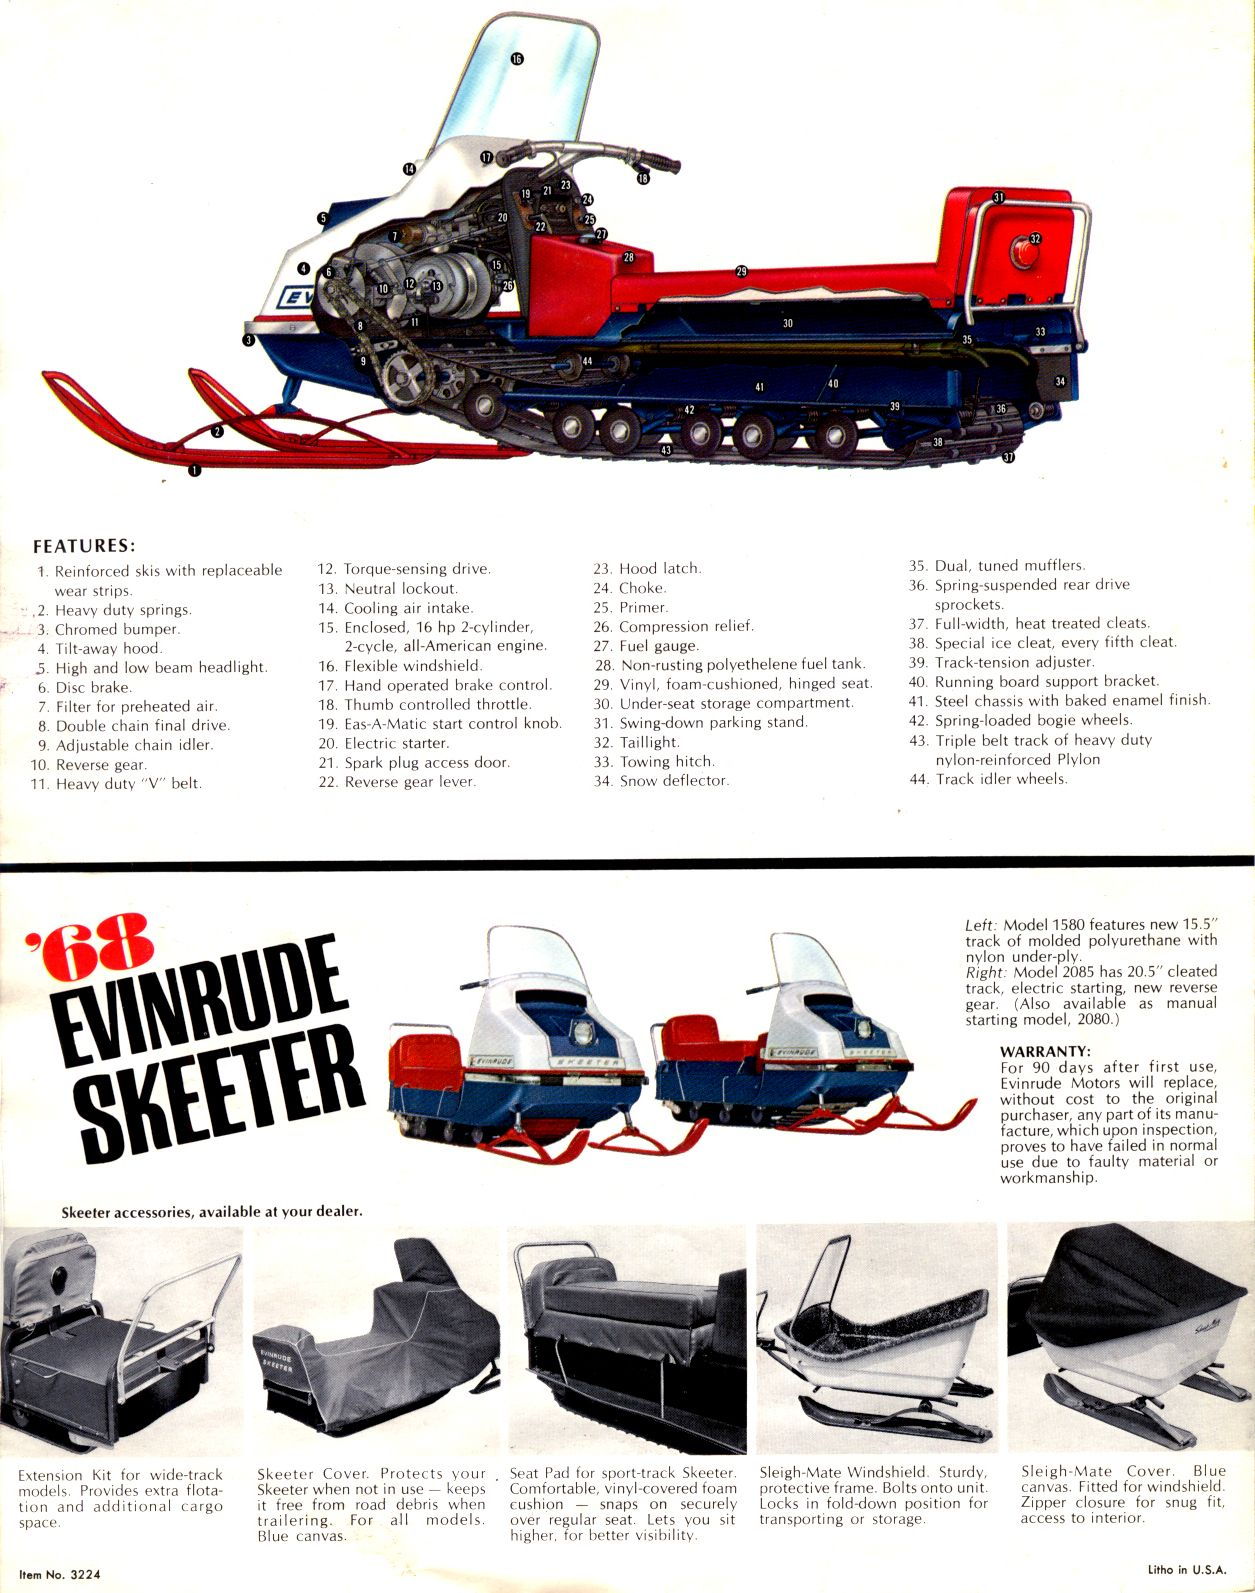 1975 Evinrude Snowmobile Google Search Vintage Sled